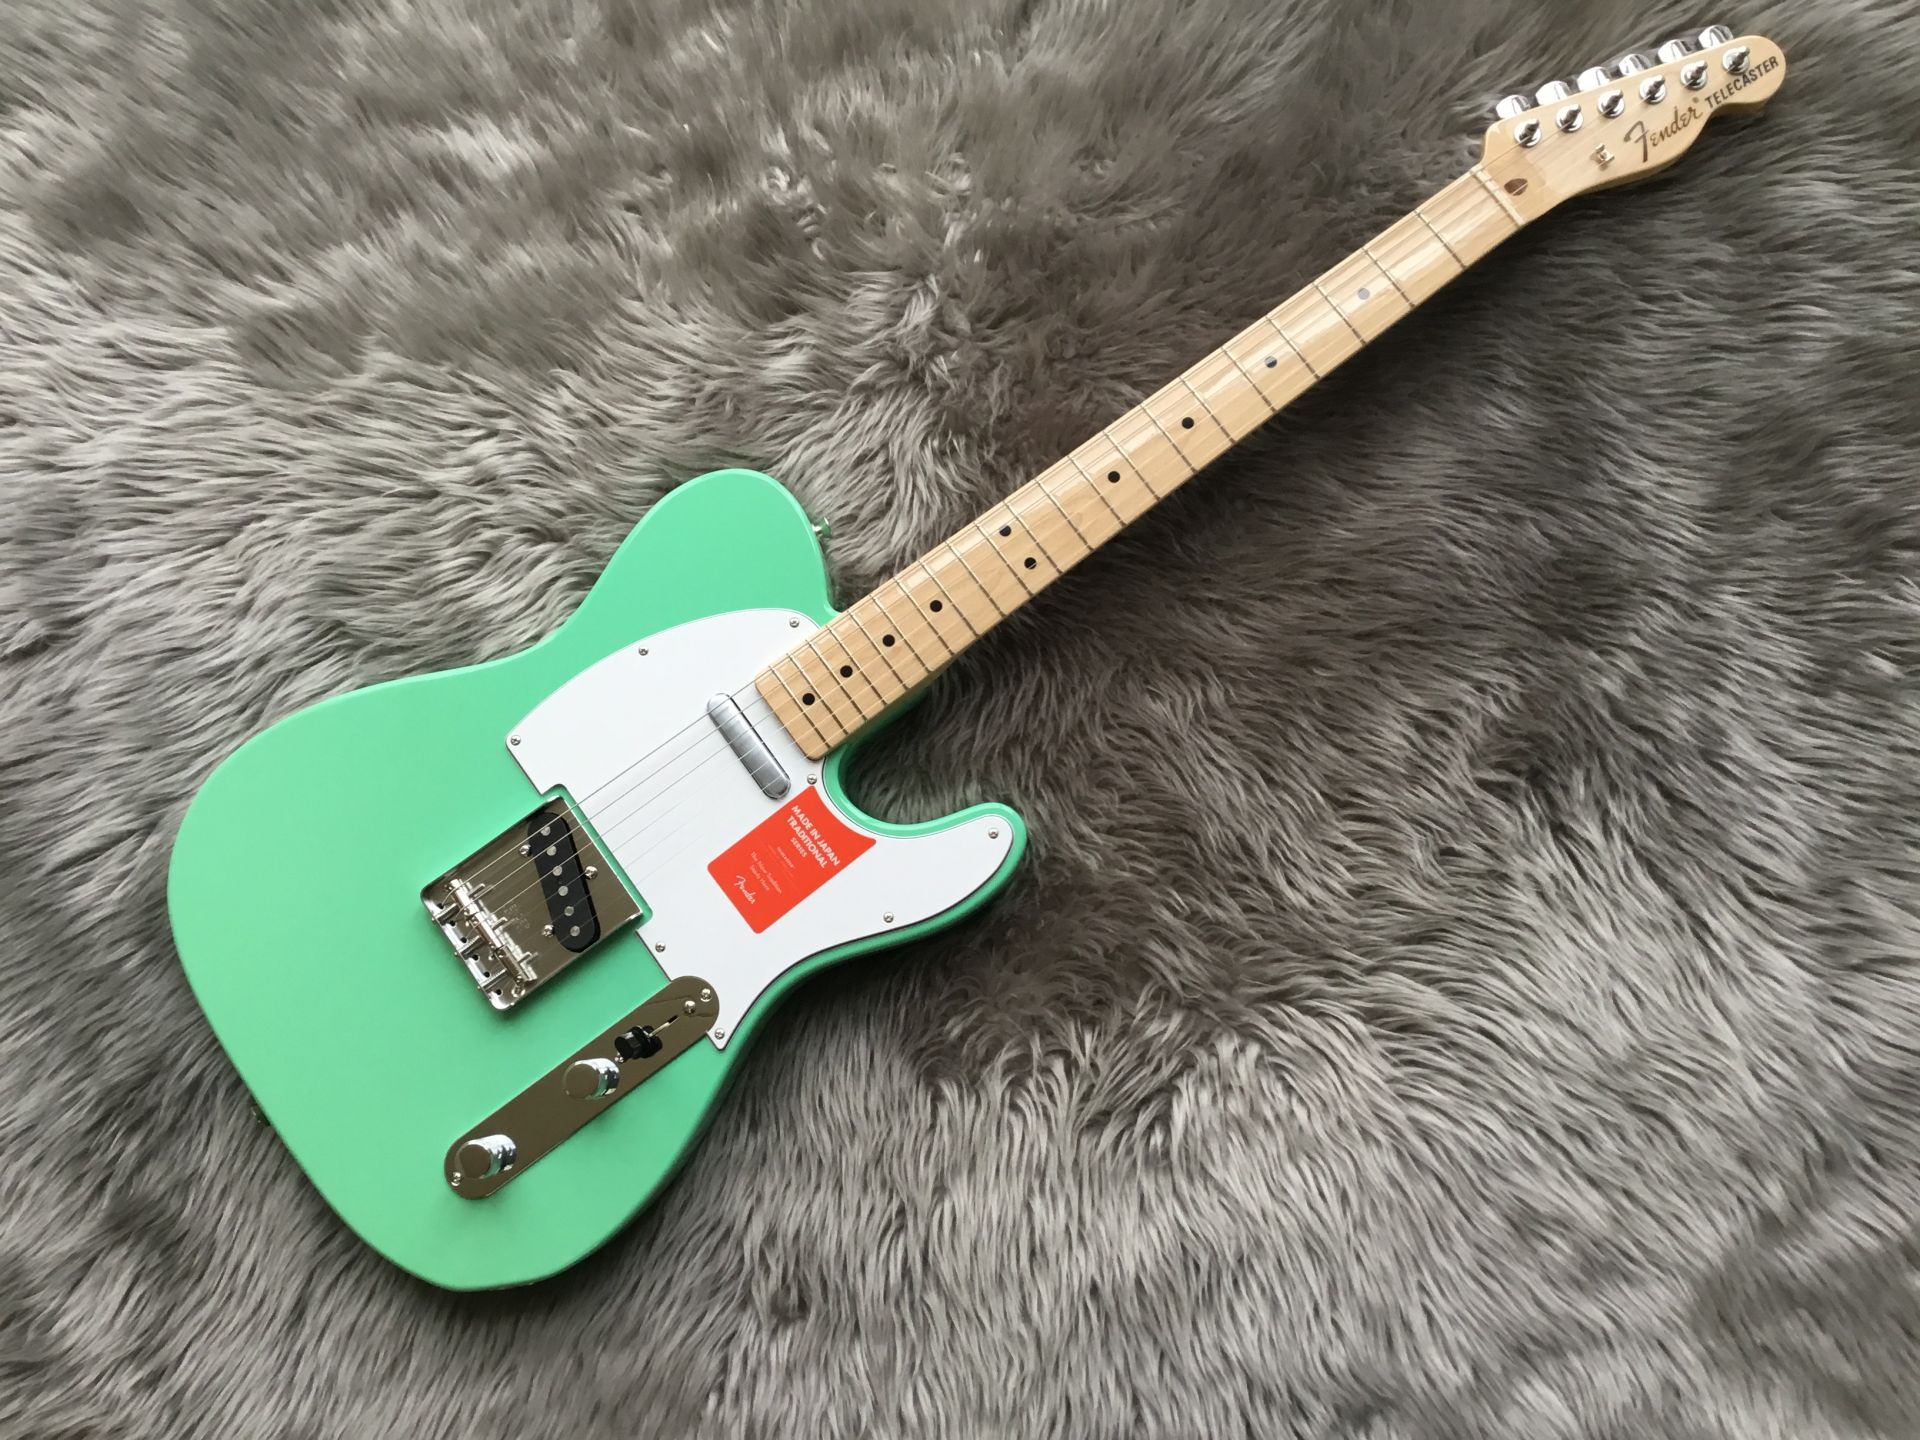 MADE IN JAPAN TRADITIONAL 70S TELECASTER® ASHのボディトップ-アップ画像